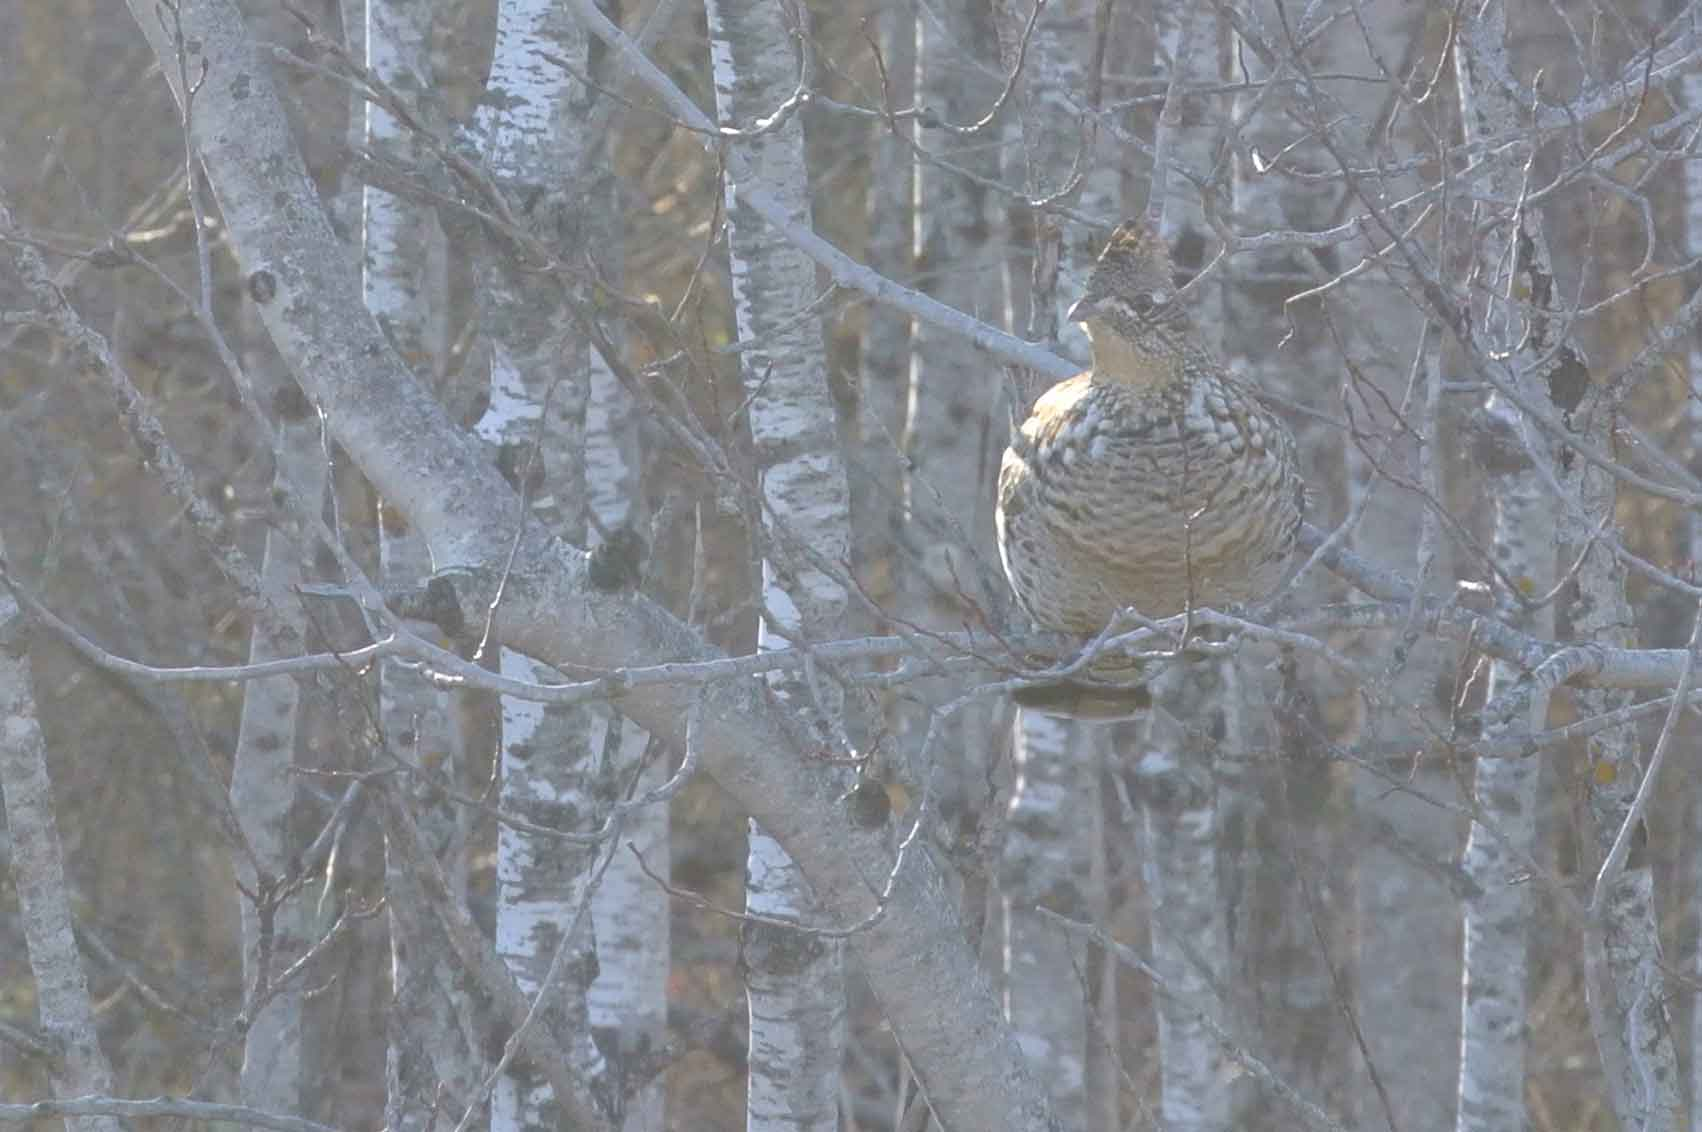 a ruffed grouse in the branches of an aspen tree